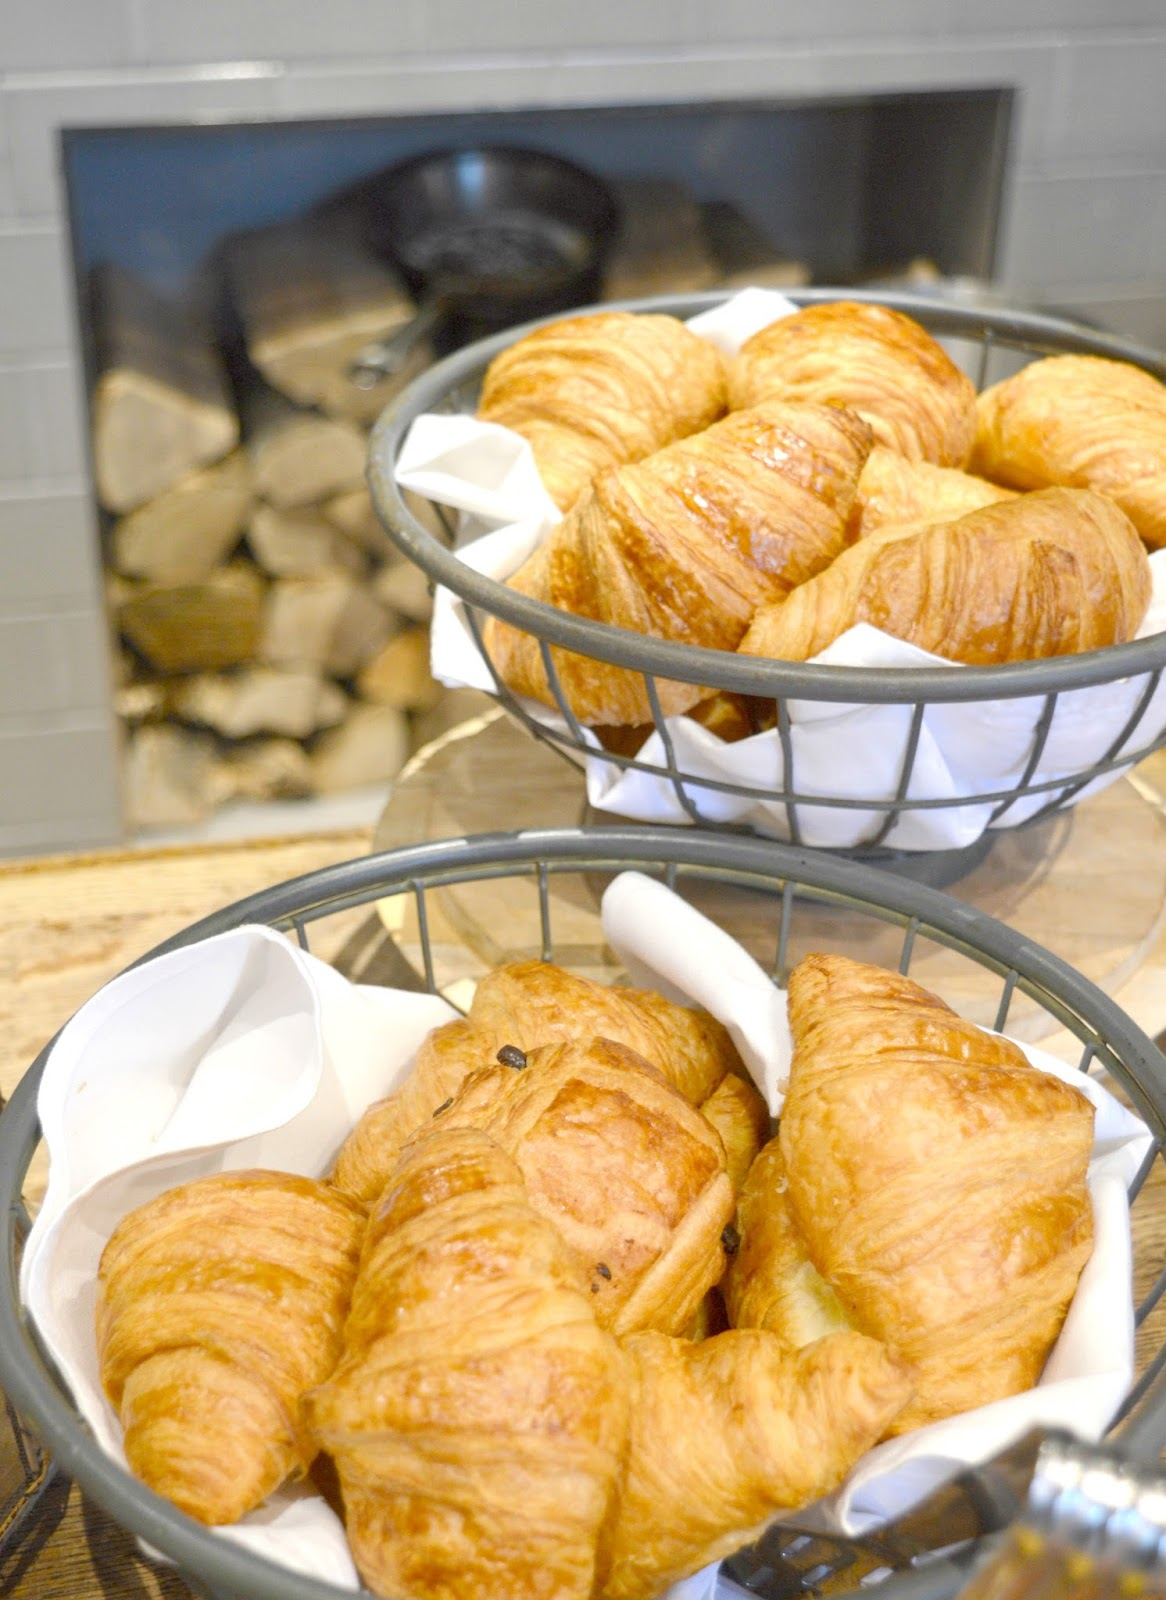 Cosy Hotel in the Cotswolds - The Painswick Croissants